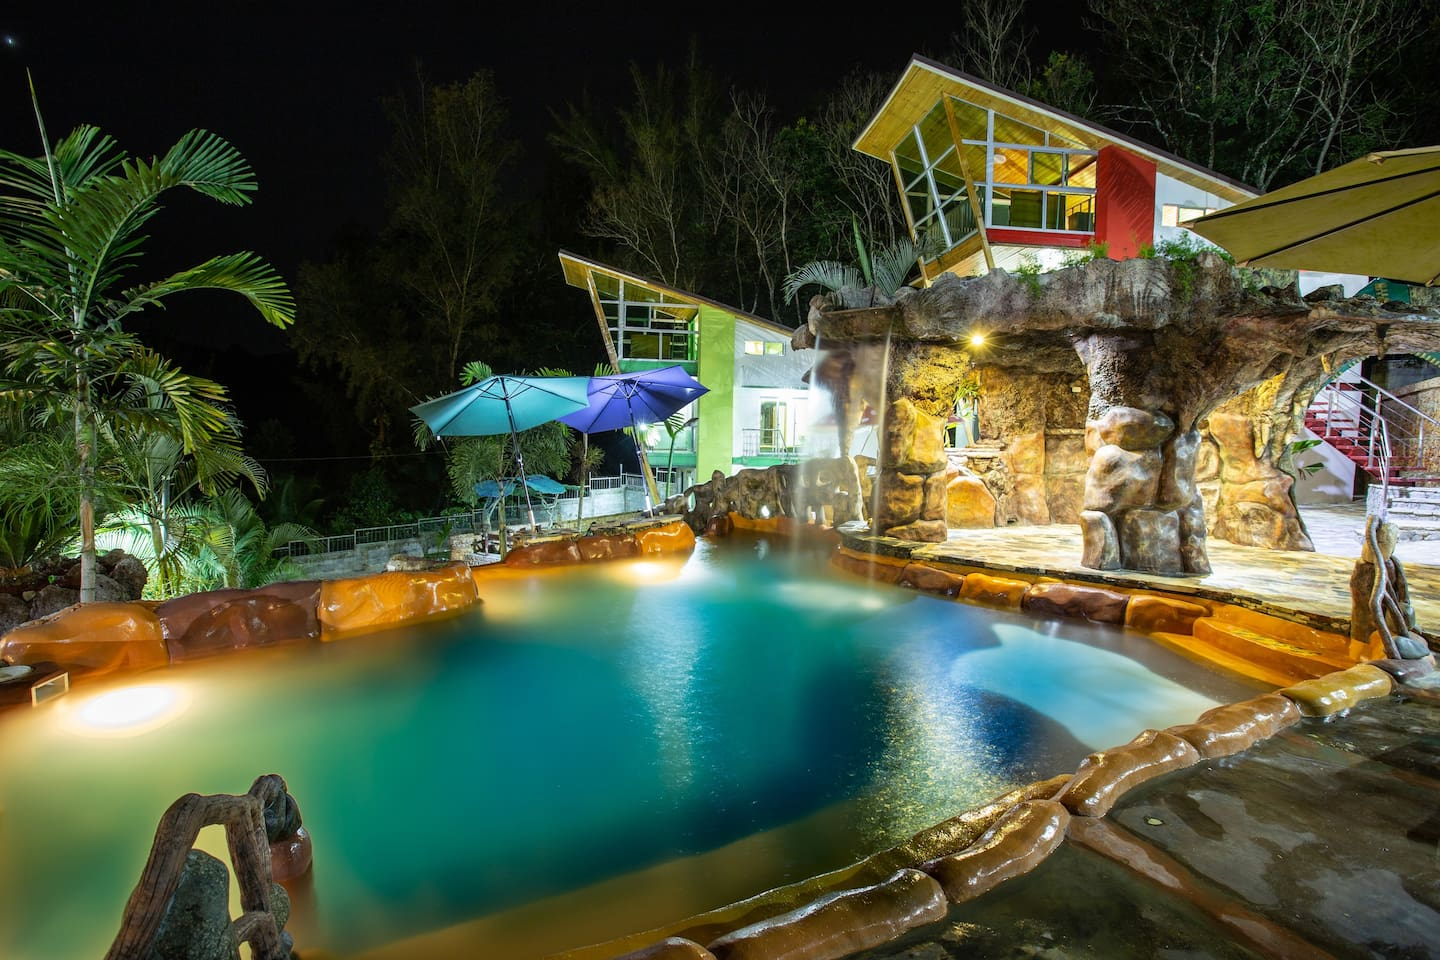 Night view of our unique and beautiful pool